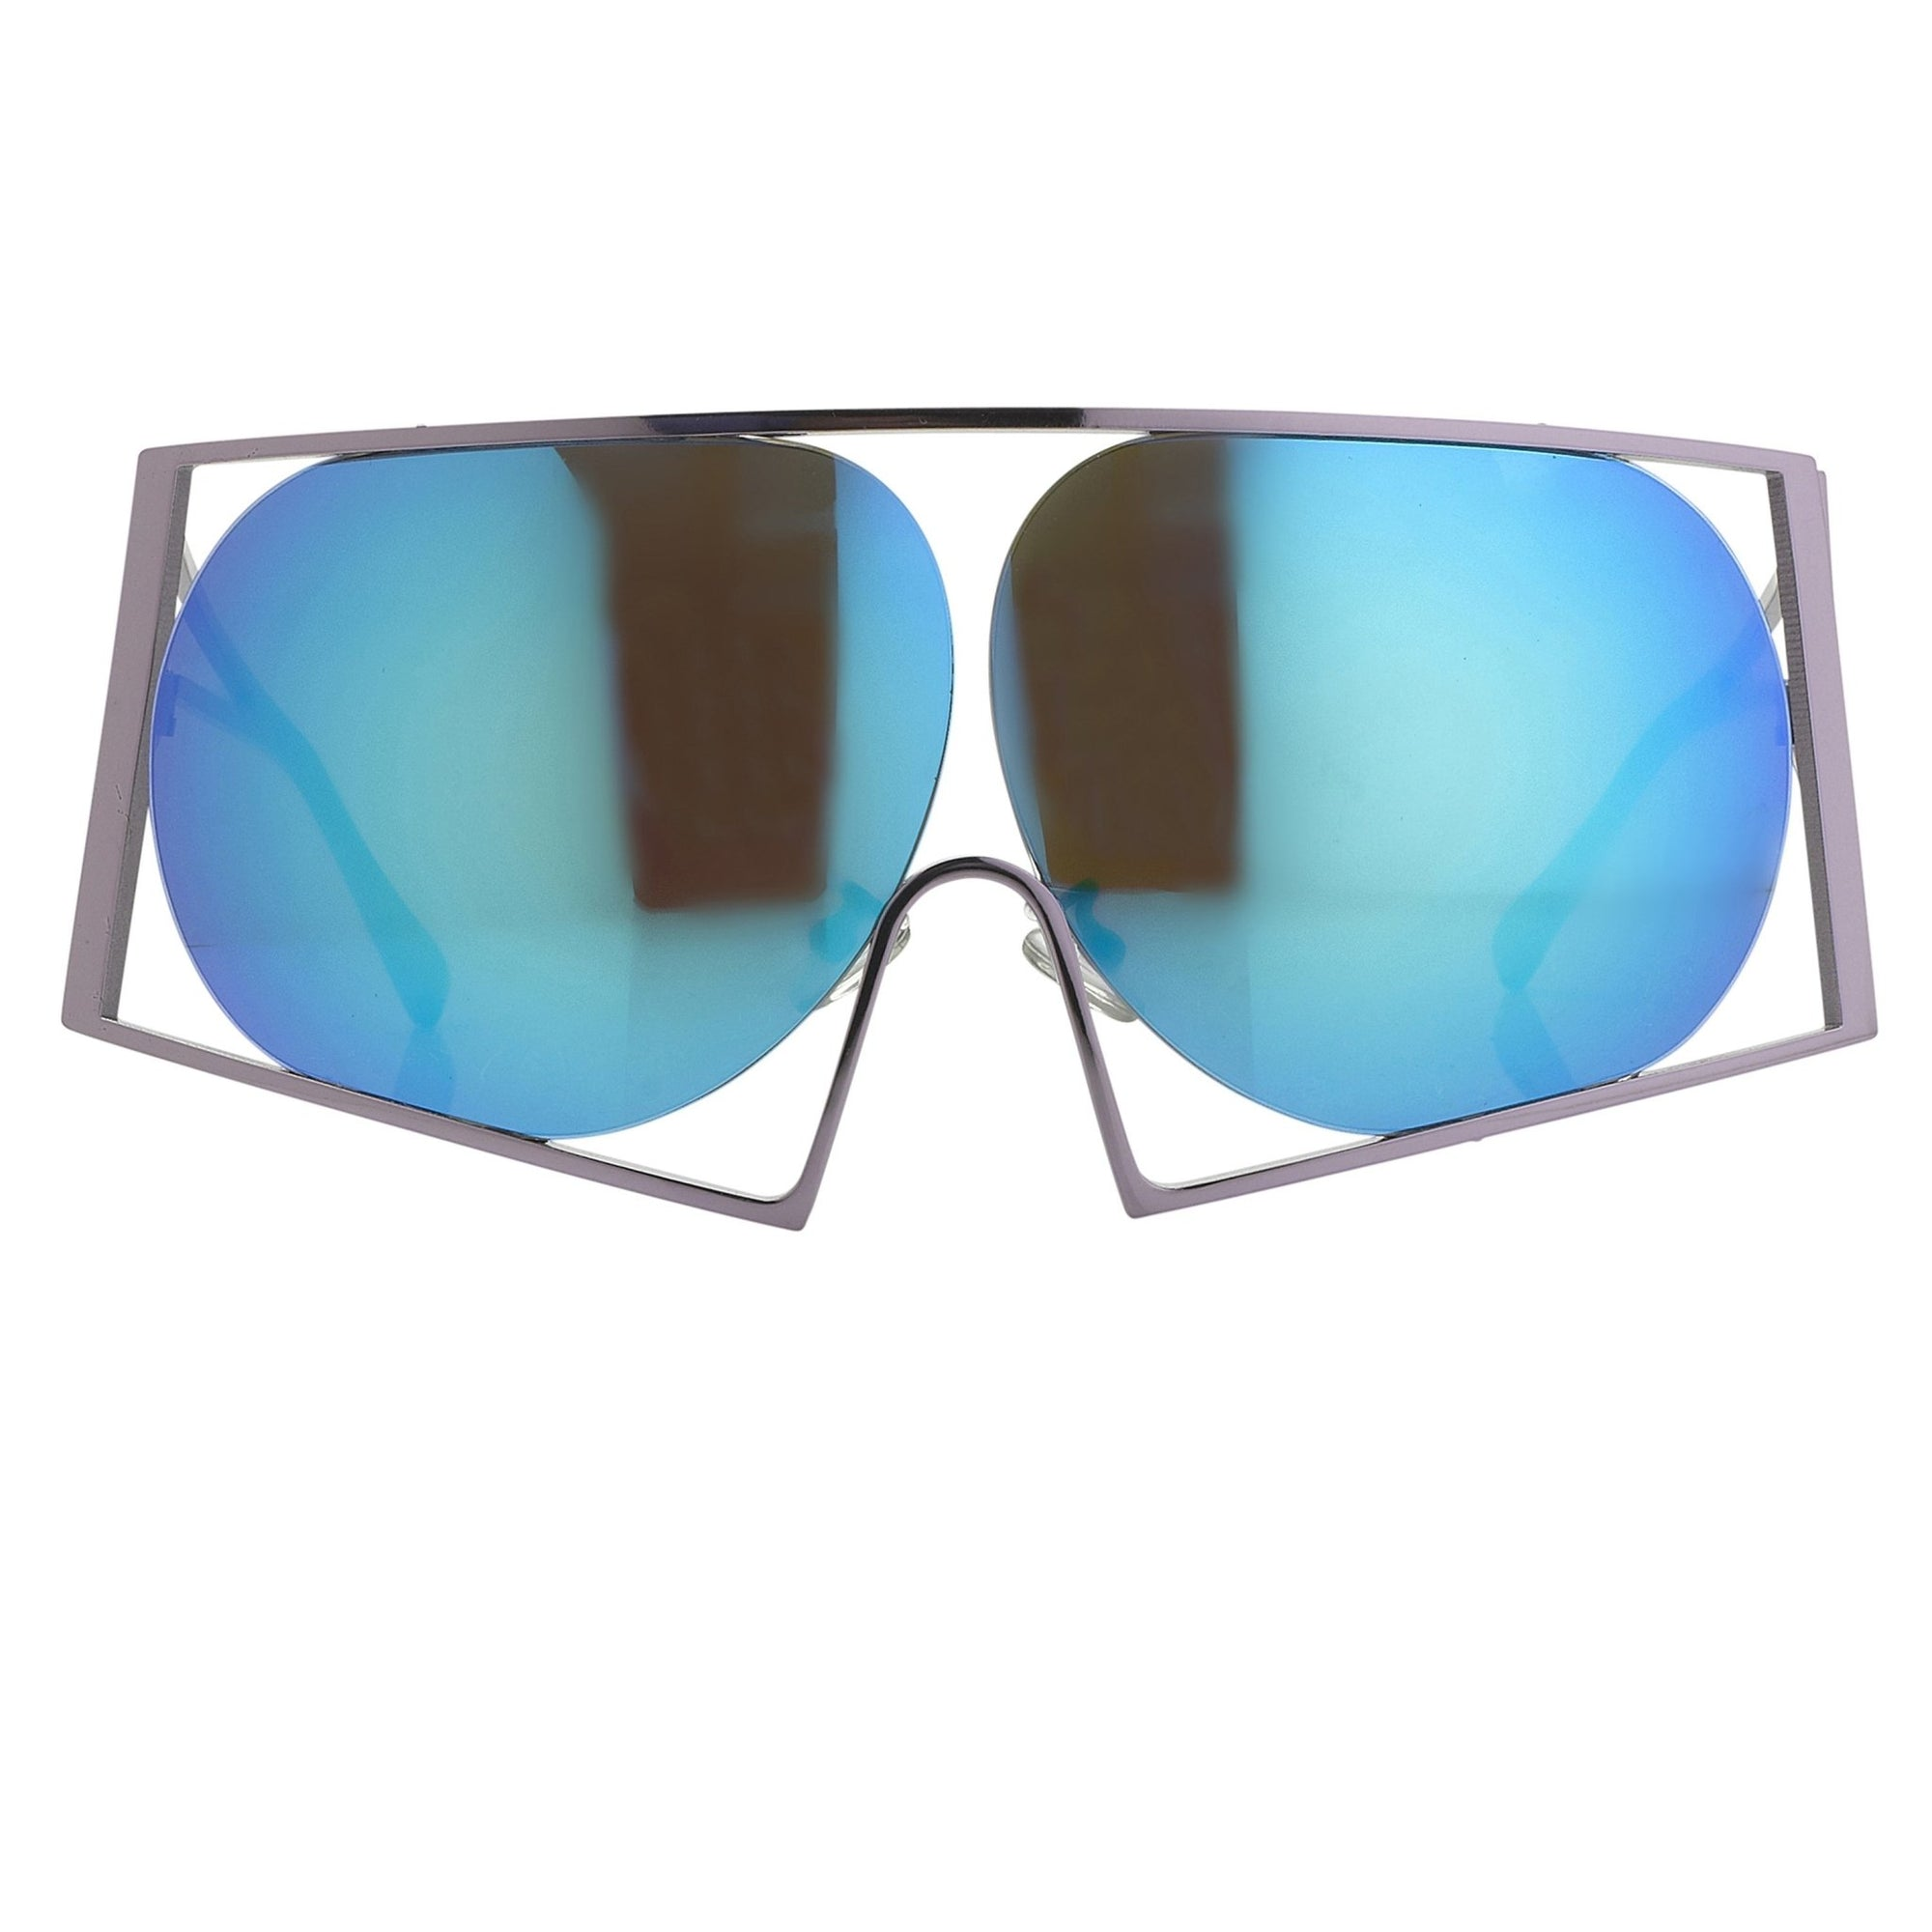 Todd Lynn Sunglasses Special Frame Purple and Revo Blue Lenses - TL4C3SUN - Watches & Crystals